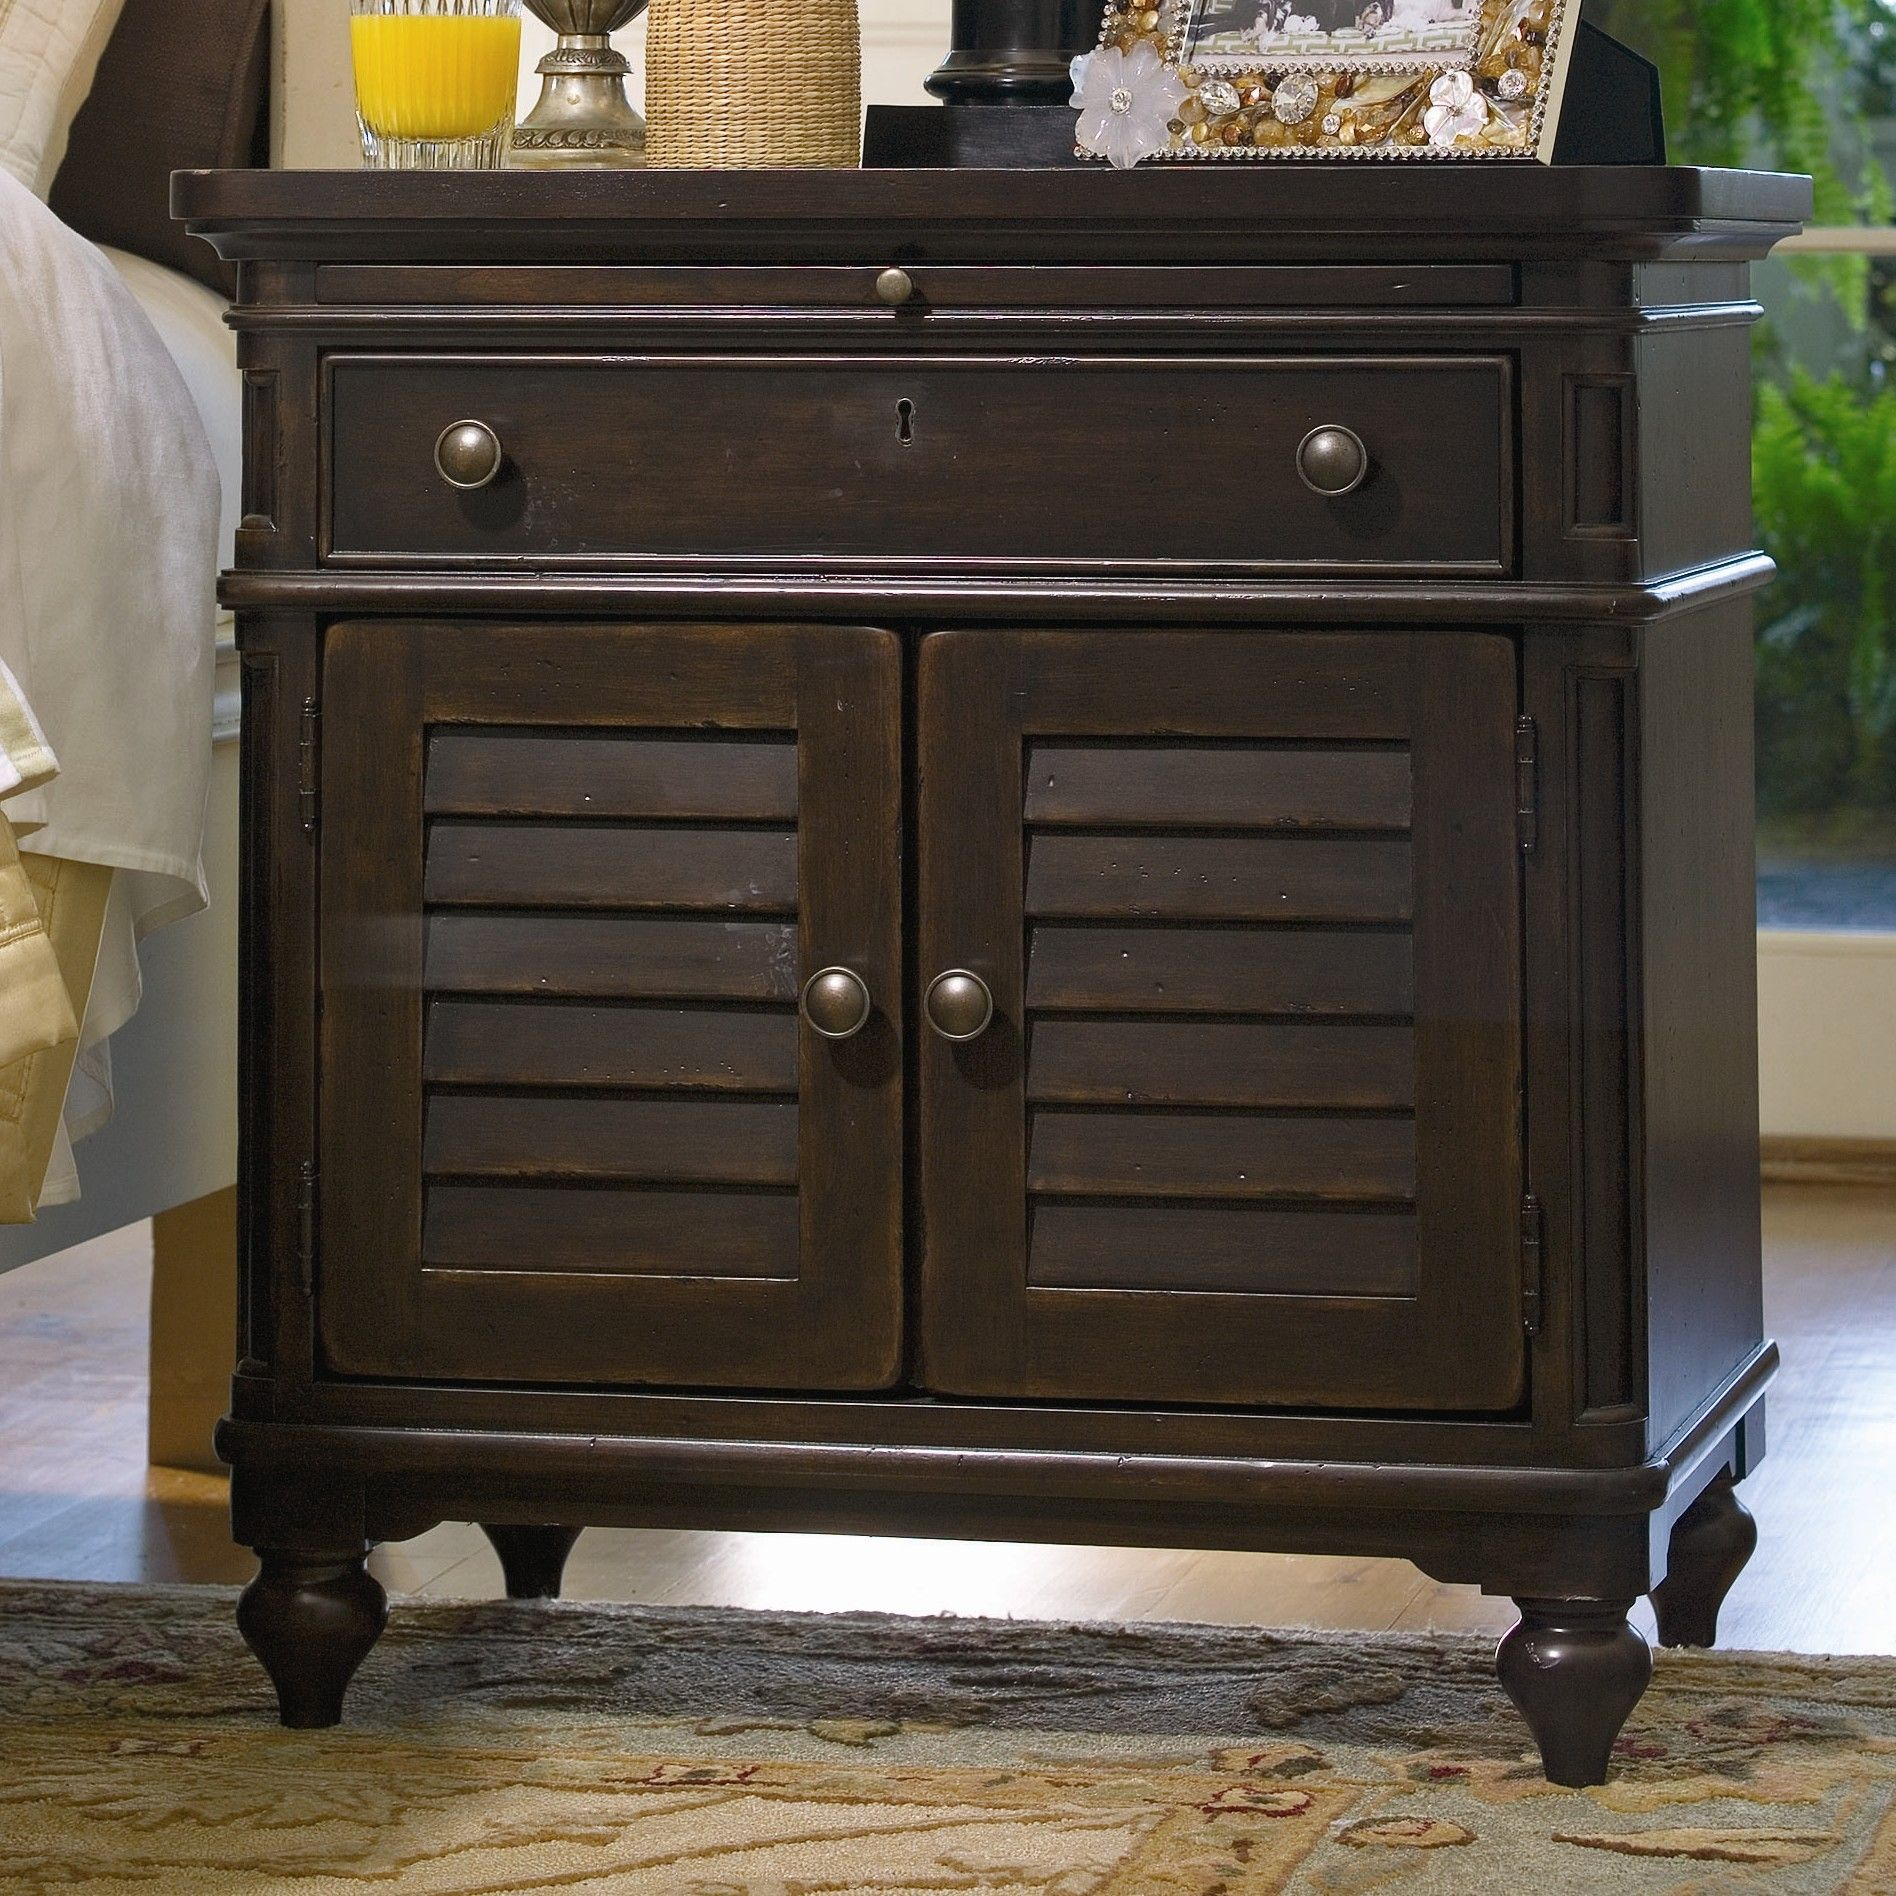 Solid 2 Drawer End Table Nightstand, Furniture, Bedroom